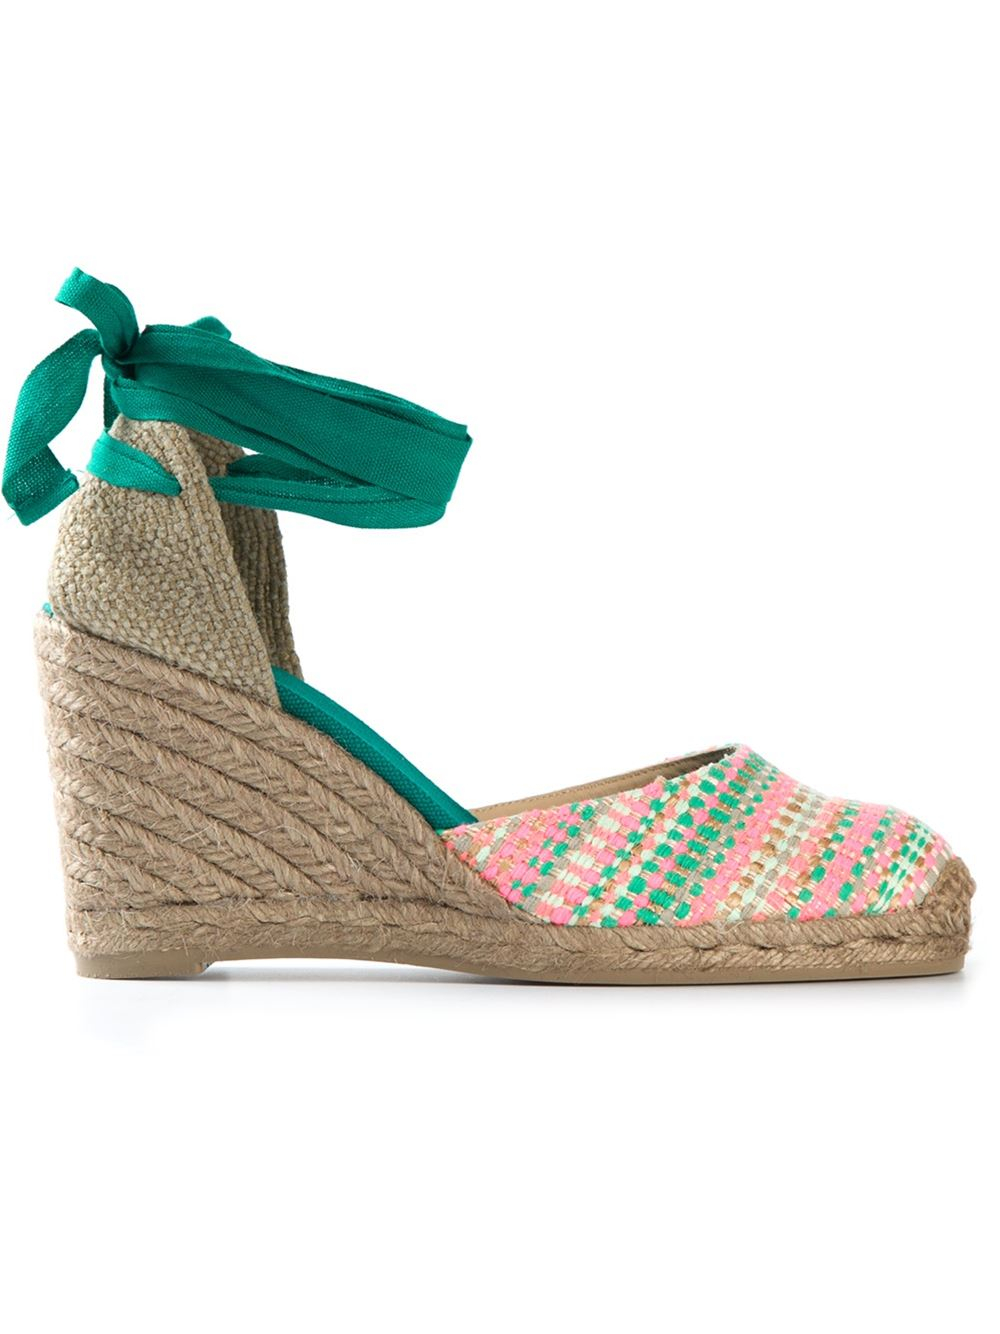 Green espadrille sandals deals cheap price low shipping for sale tgmCL6de